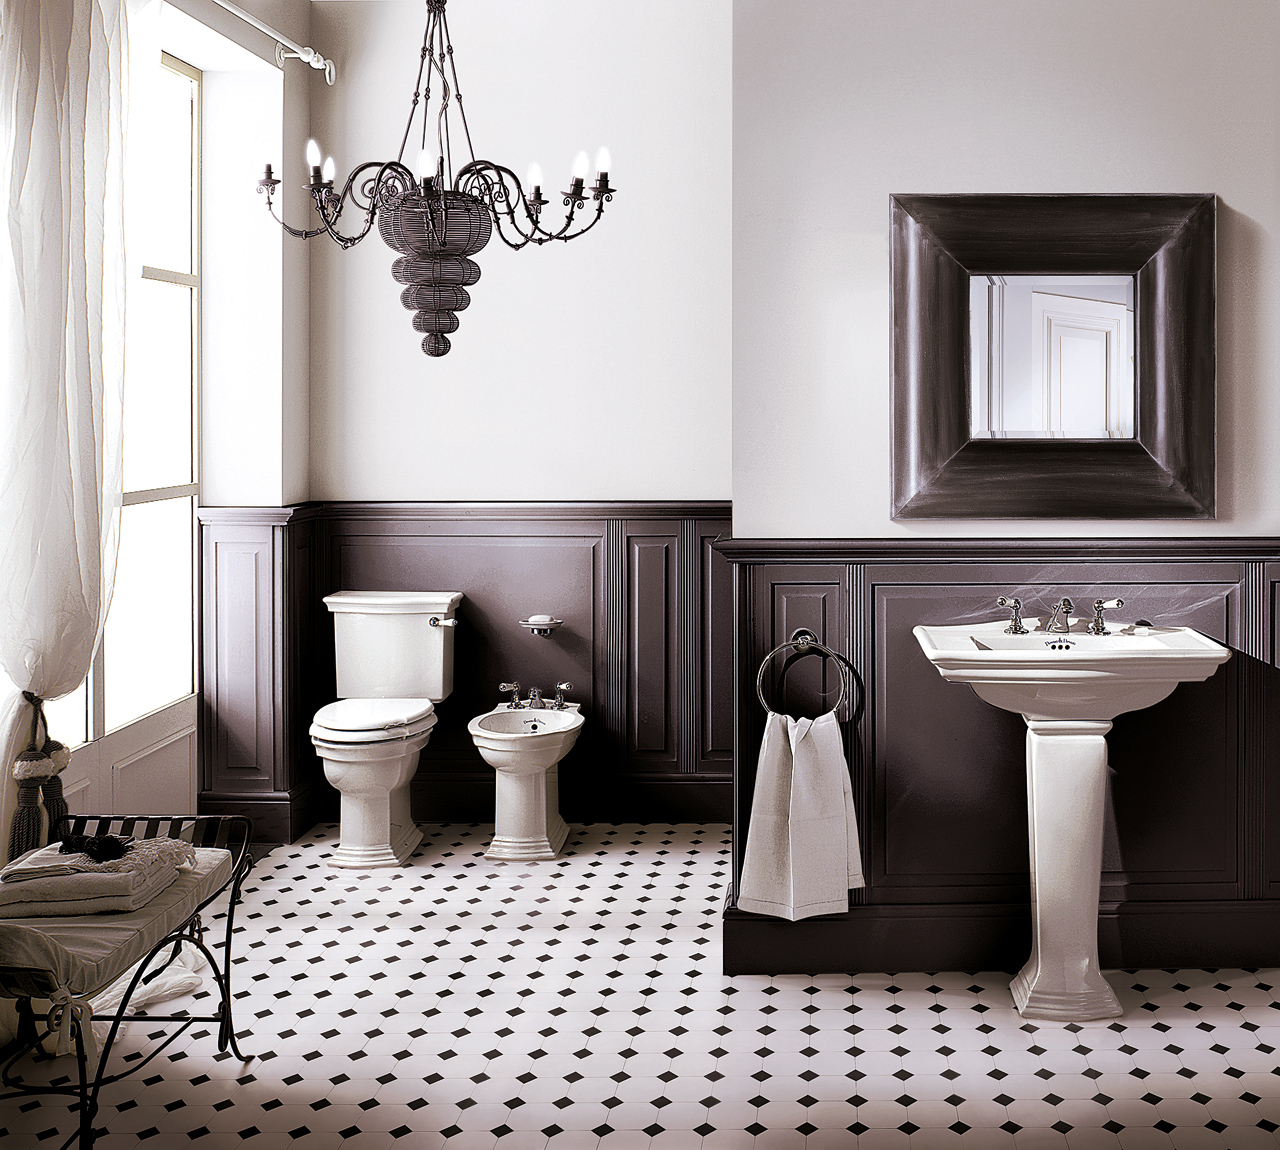 Classic Bathrooms: Devon & Devon: Linea-Westminster